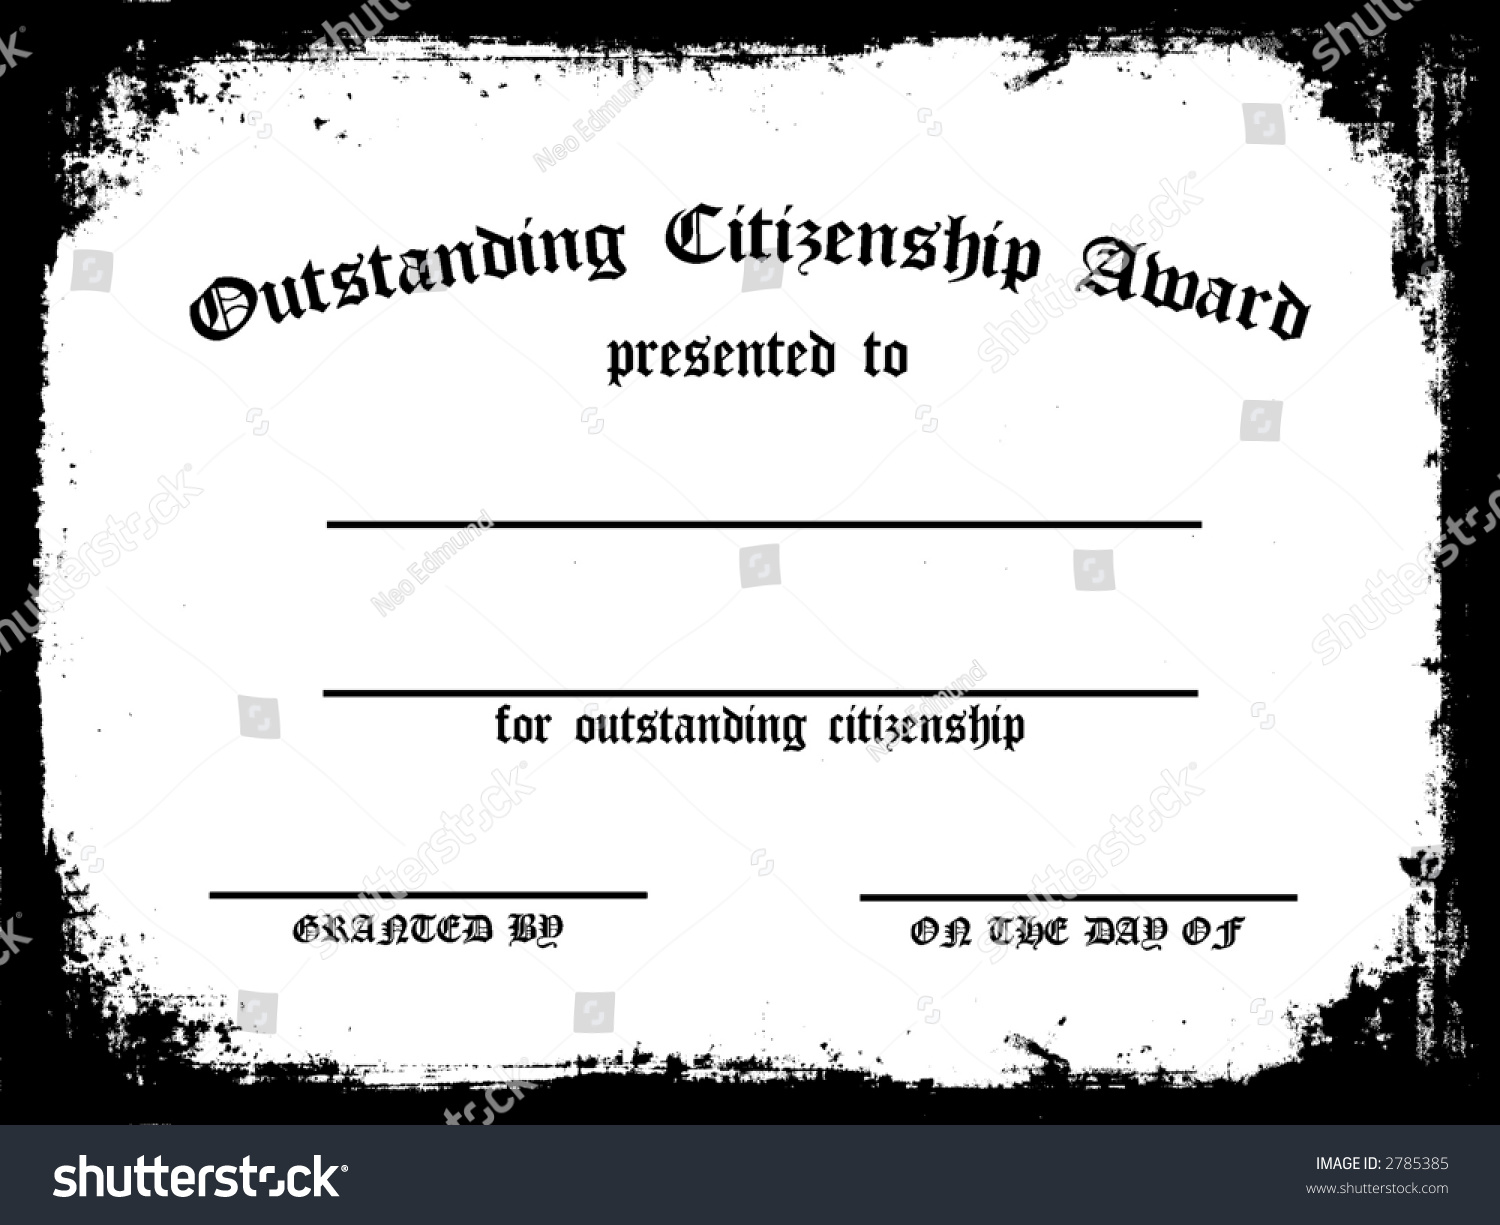 Walking certificate templates image collections templates walking certificate templates images templates example free download outstanding award certificate hallo customizable outstanding citizenship award yadclub Gallery